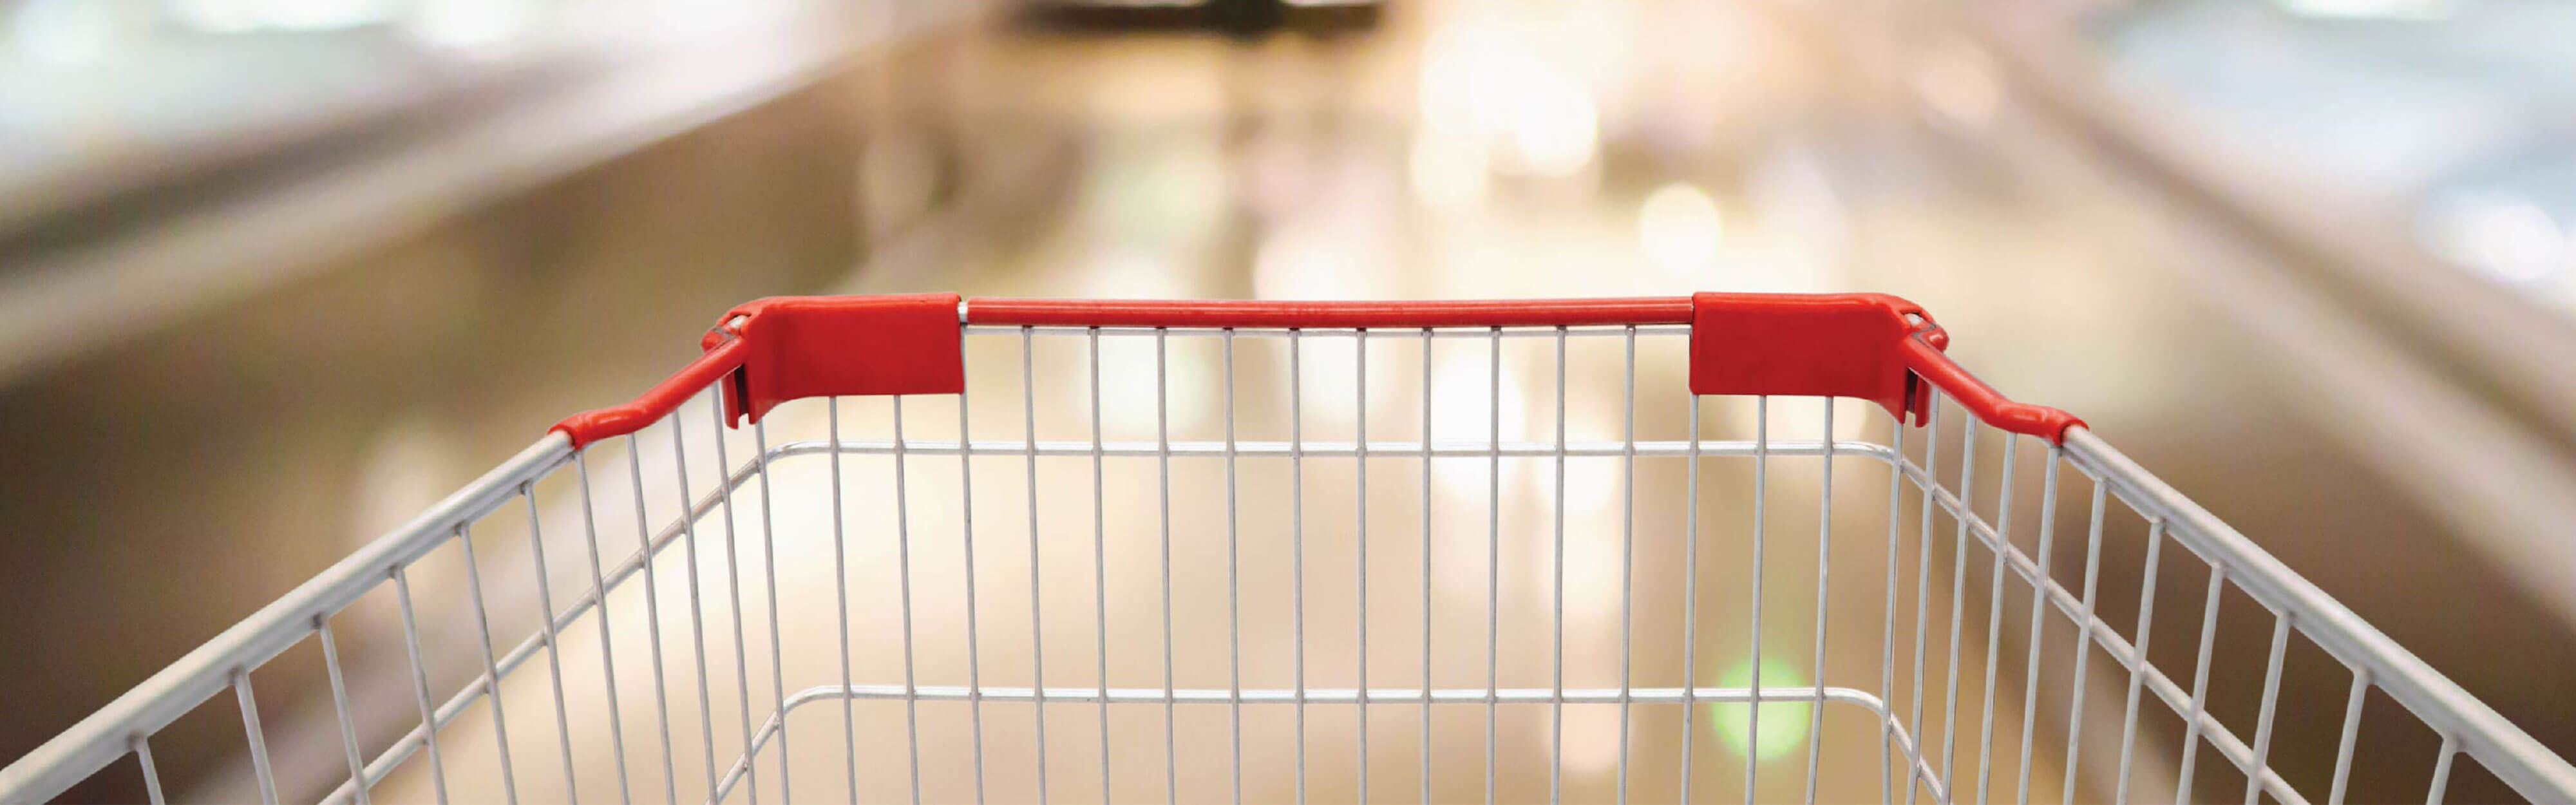 Retail & Consumer Packaged Goods